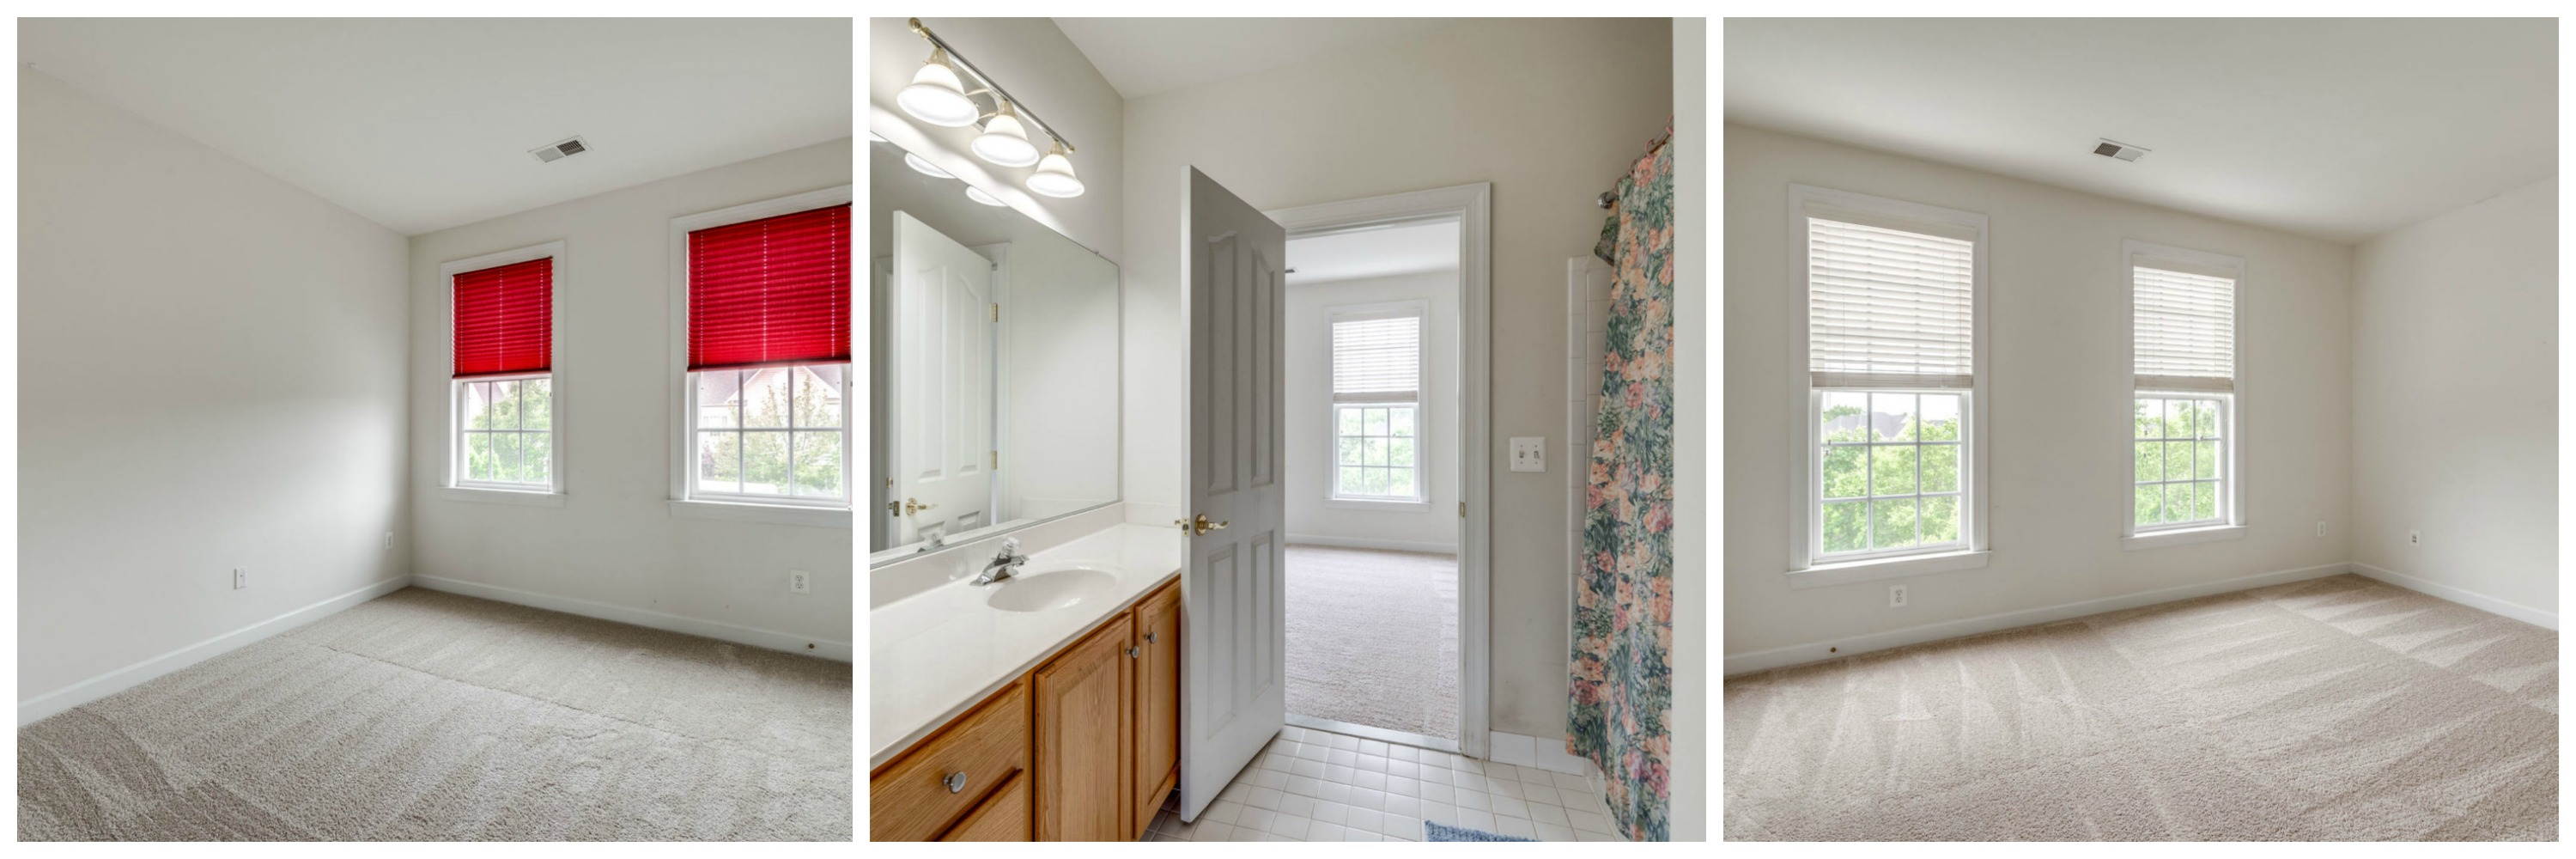 43725 Collett Mill Ct_Lansdowne on The Potomac_Additional Bedrooms and Bath